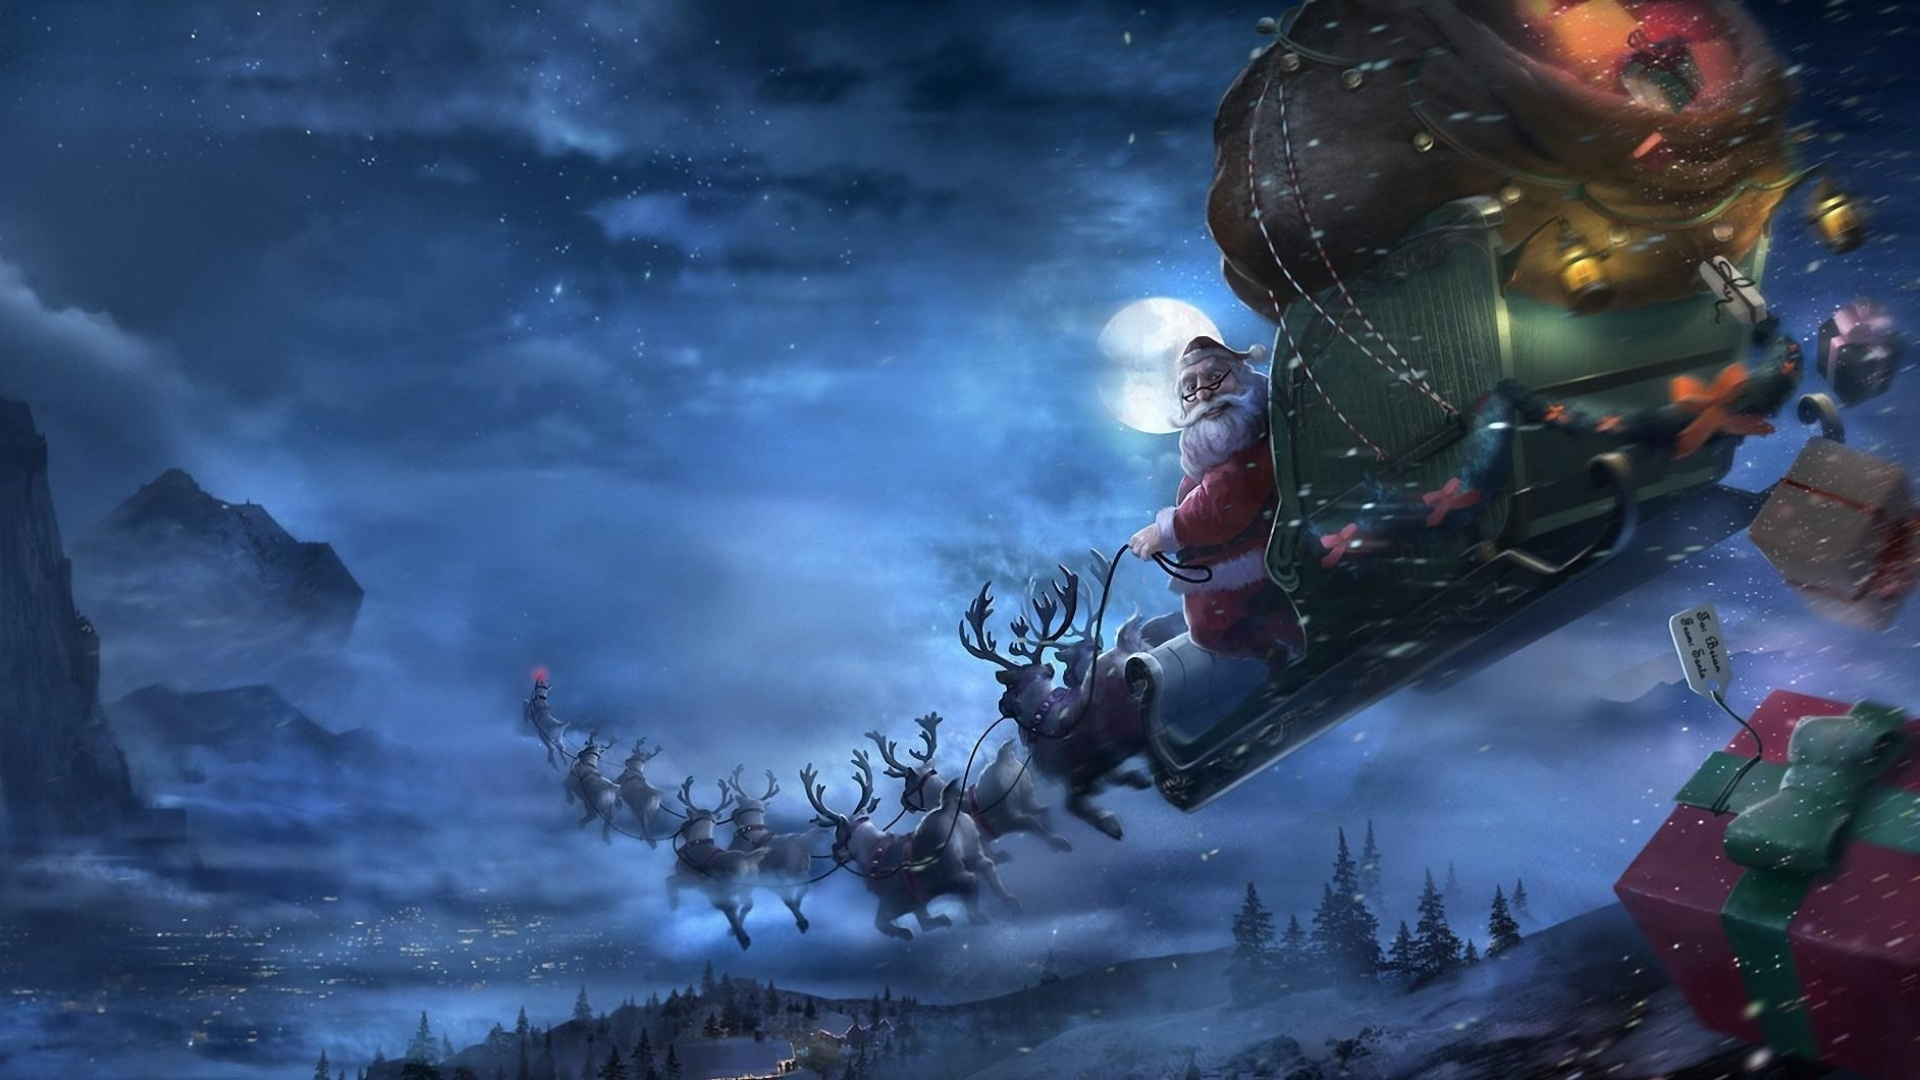 There's A Theory About Santa, Reindeer And Drugs